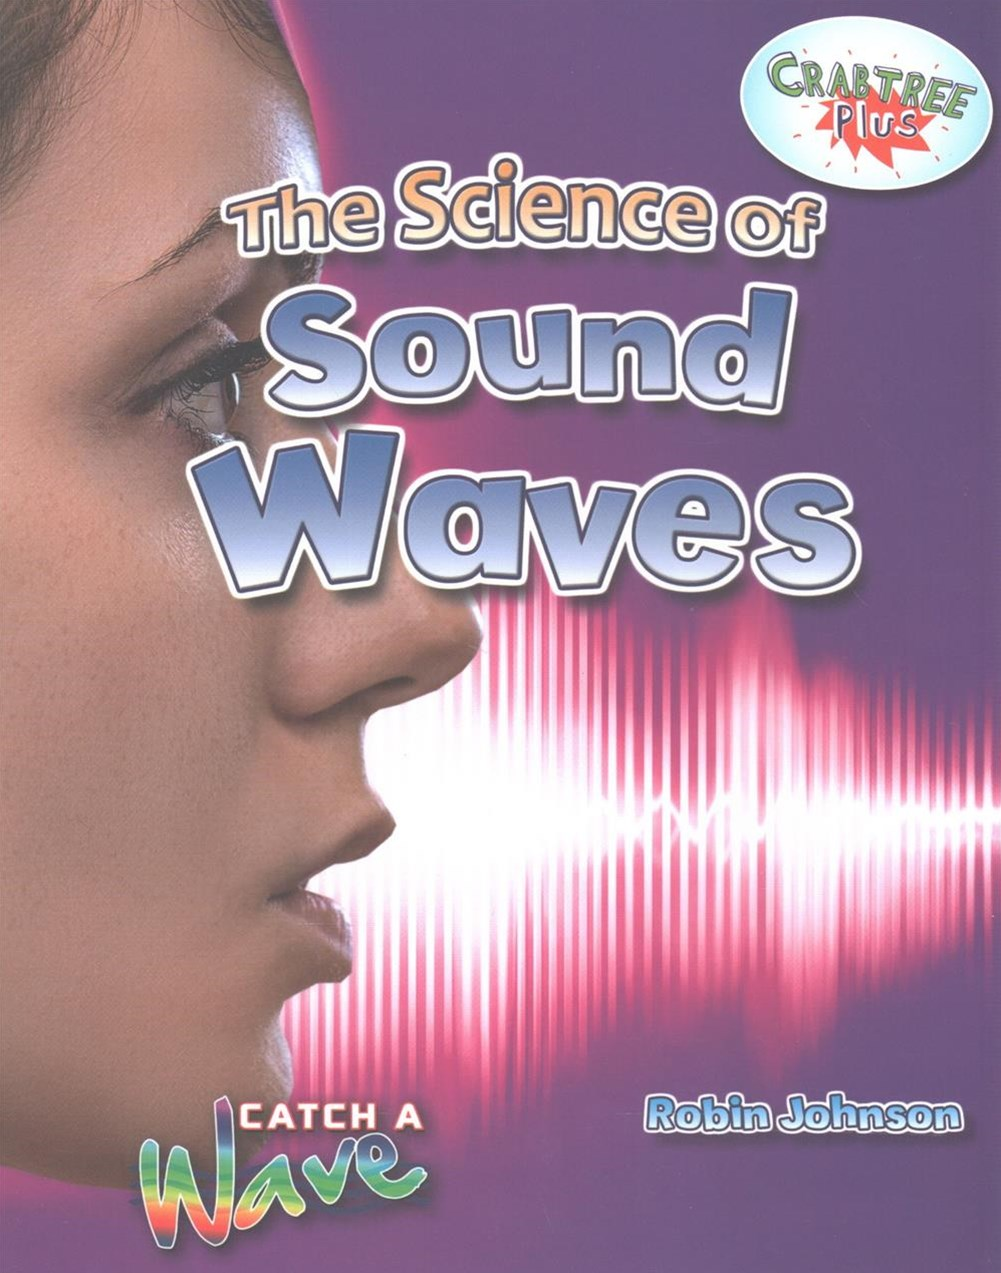 The Science of Sound Waves - Catch a Wave